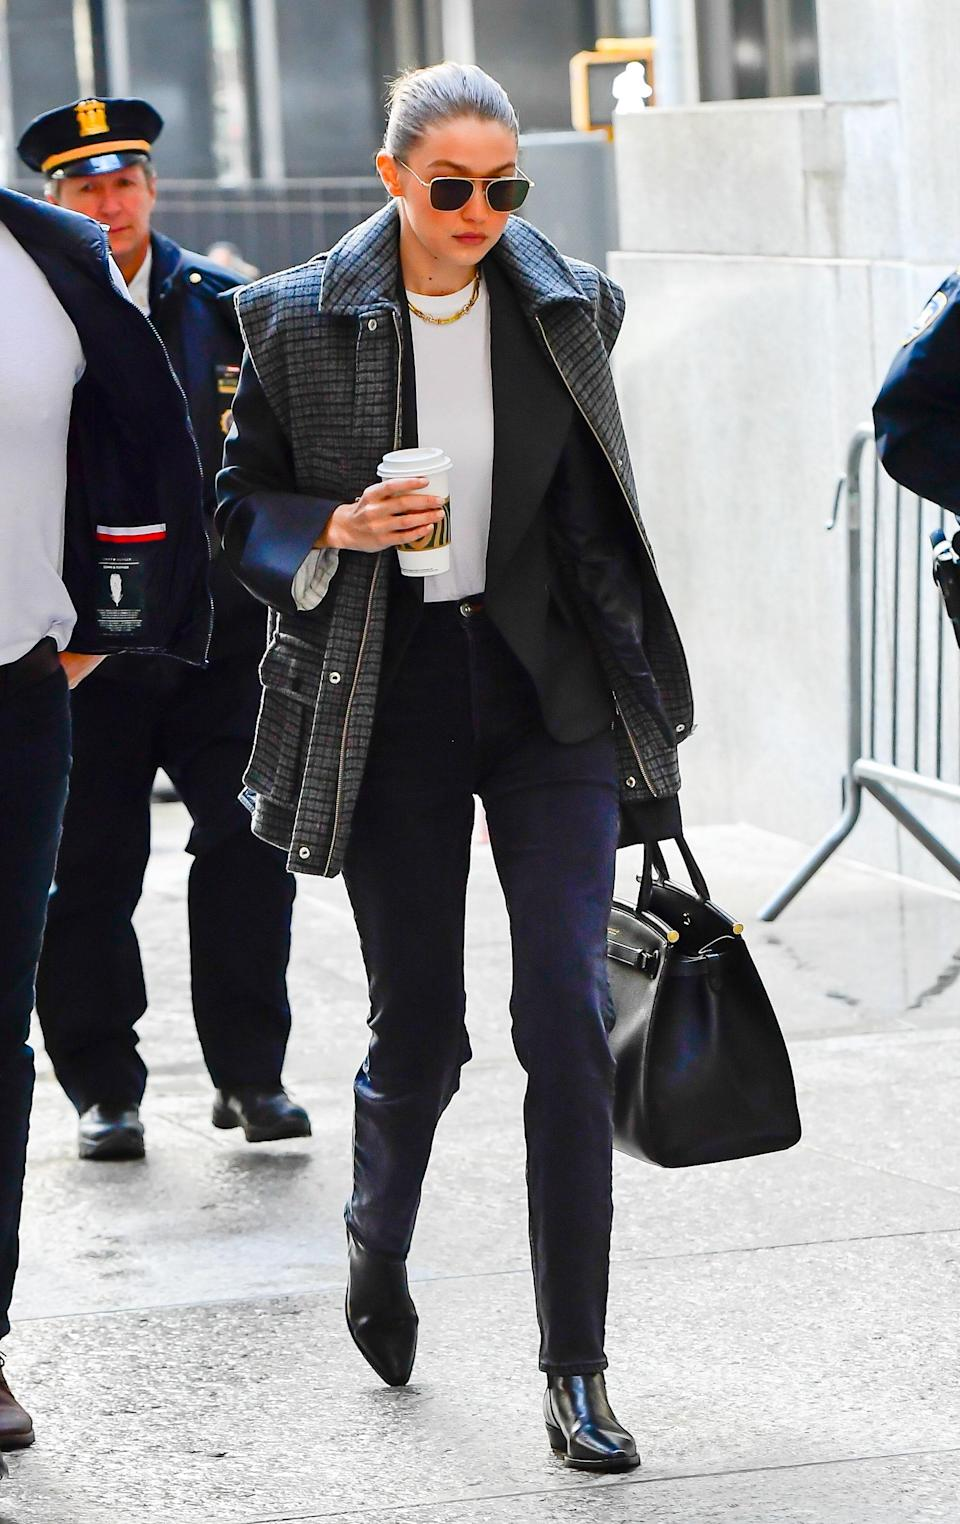 She headed to Manhattan Criminal Court for Harvey Weinstein's trial meaning business.